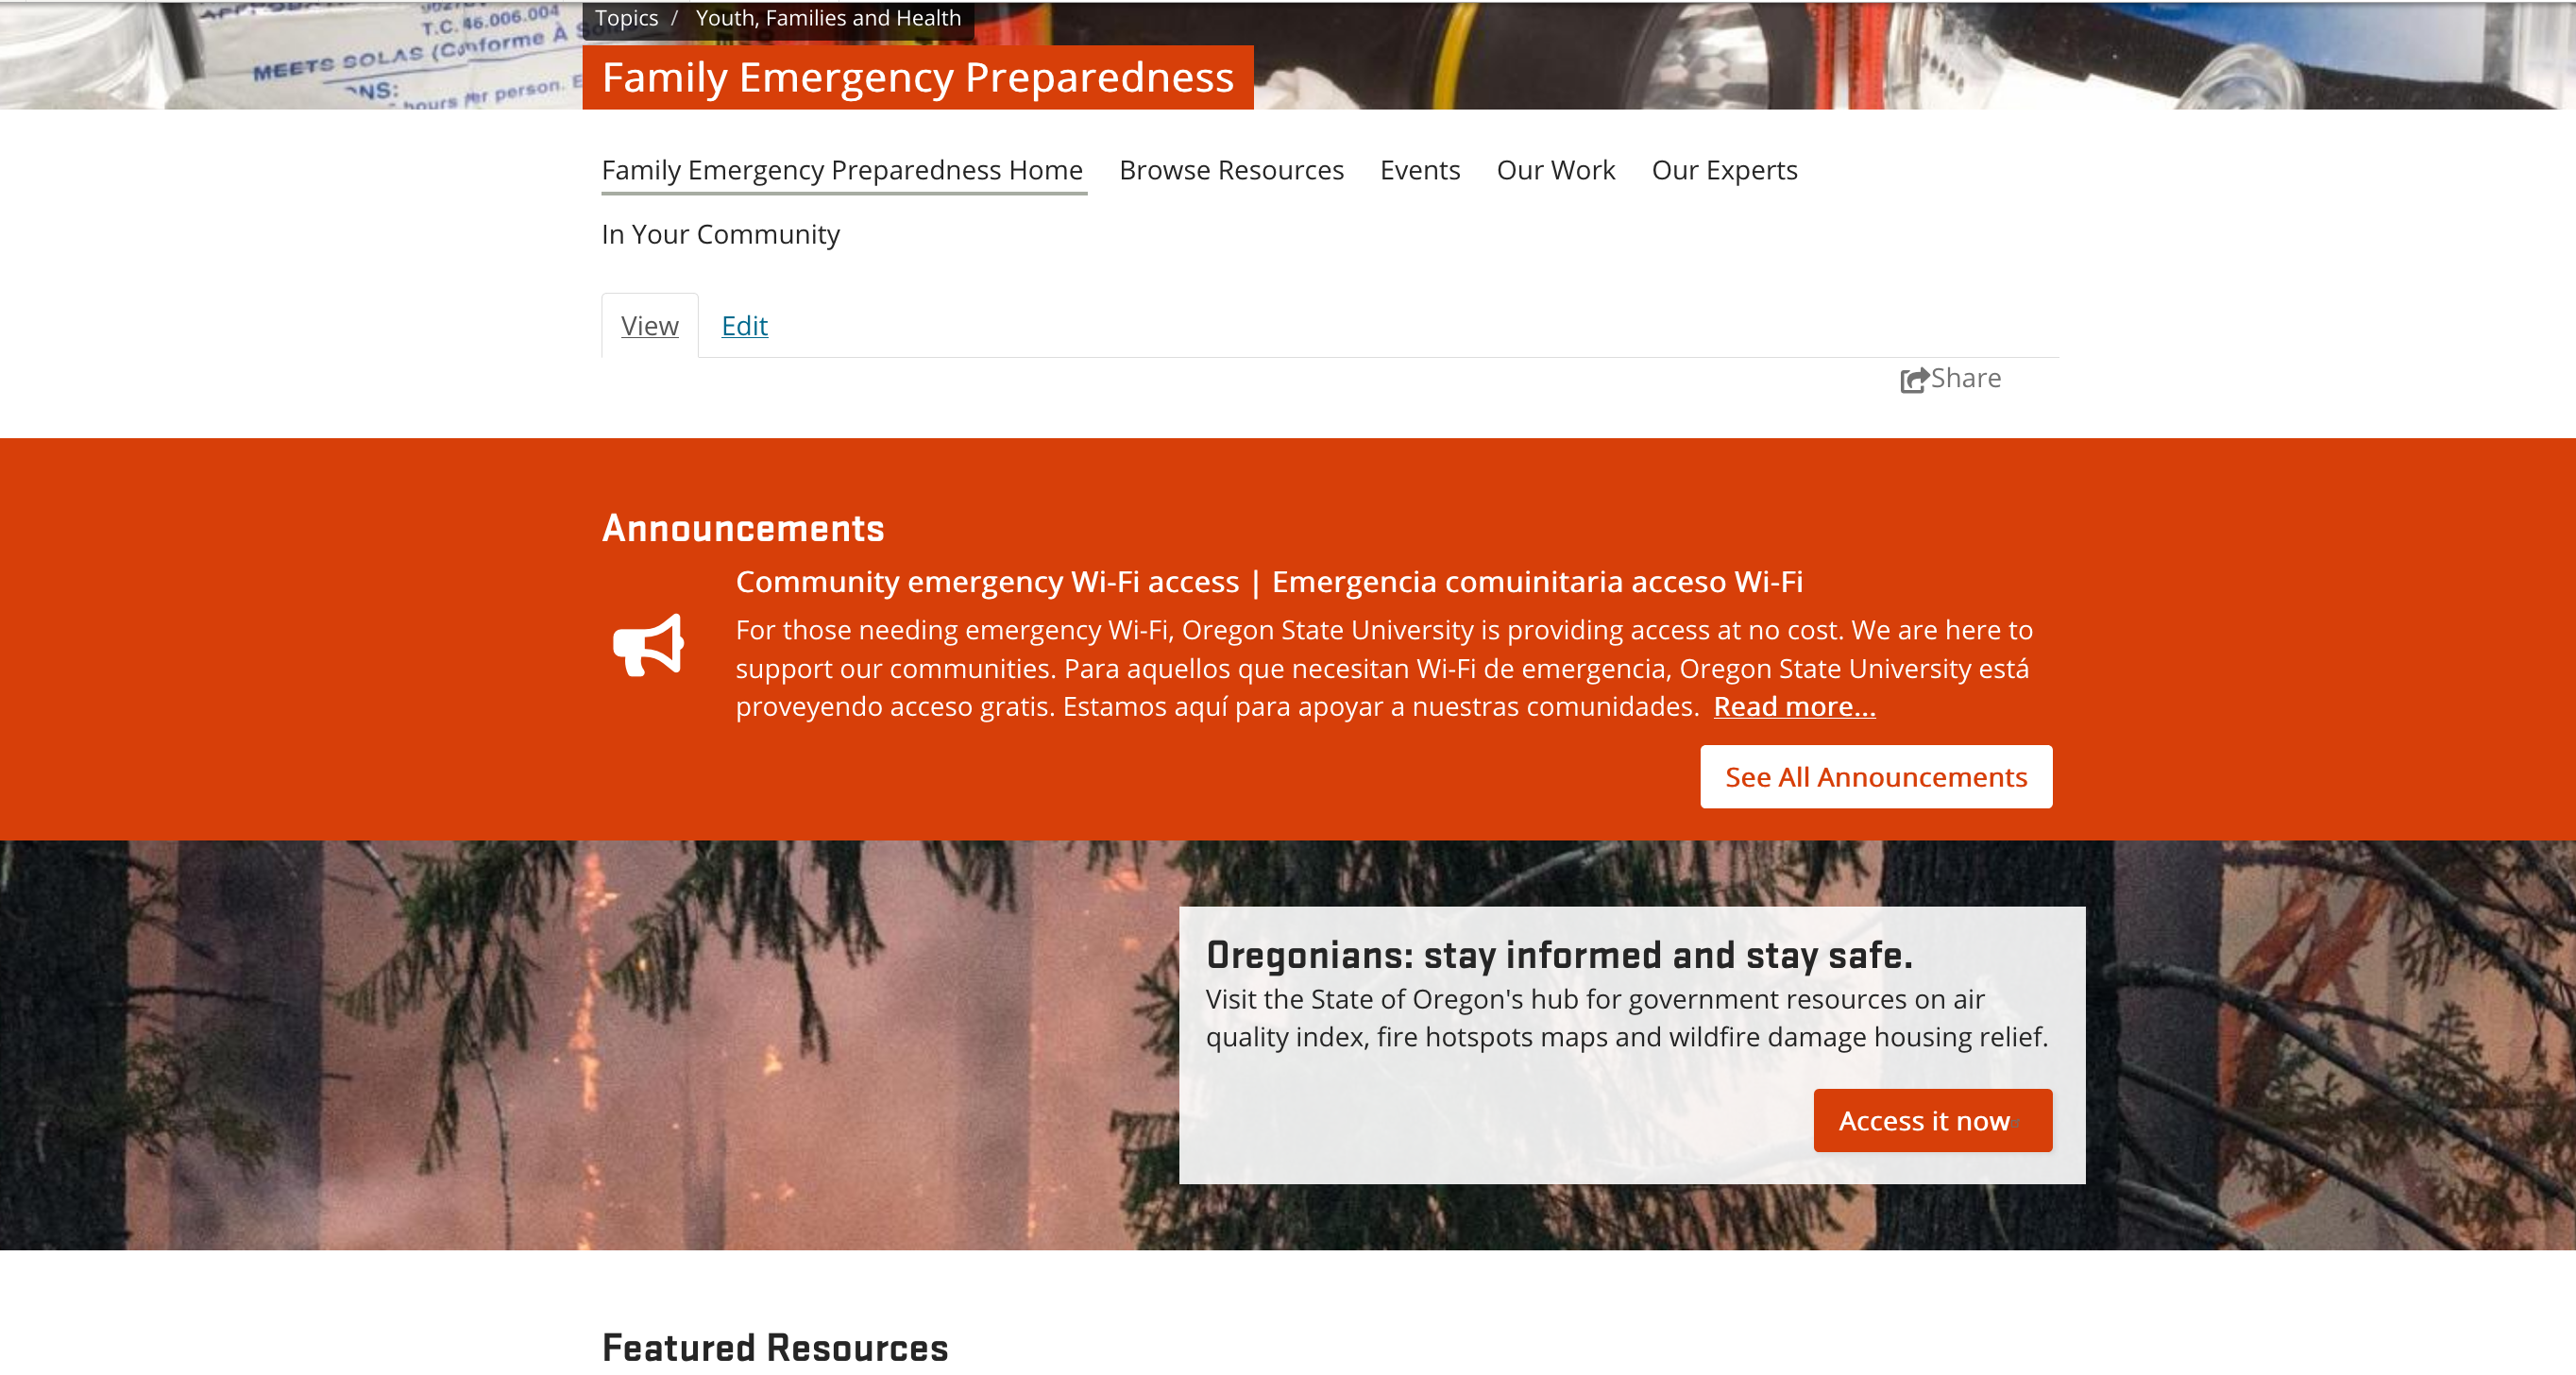 Family Emergency Preparedness topic page with announcement about community emergency Wi-Fi access and a call to action box for Oregonians to stay safe and informed with link to State of Oregon resource hub